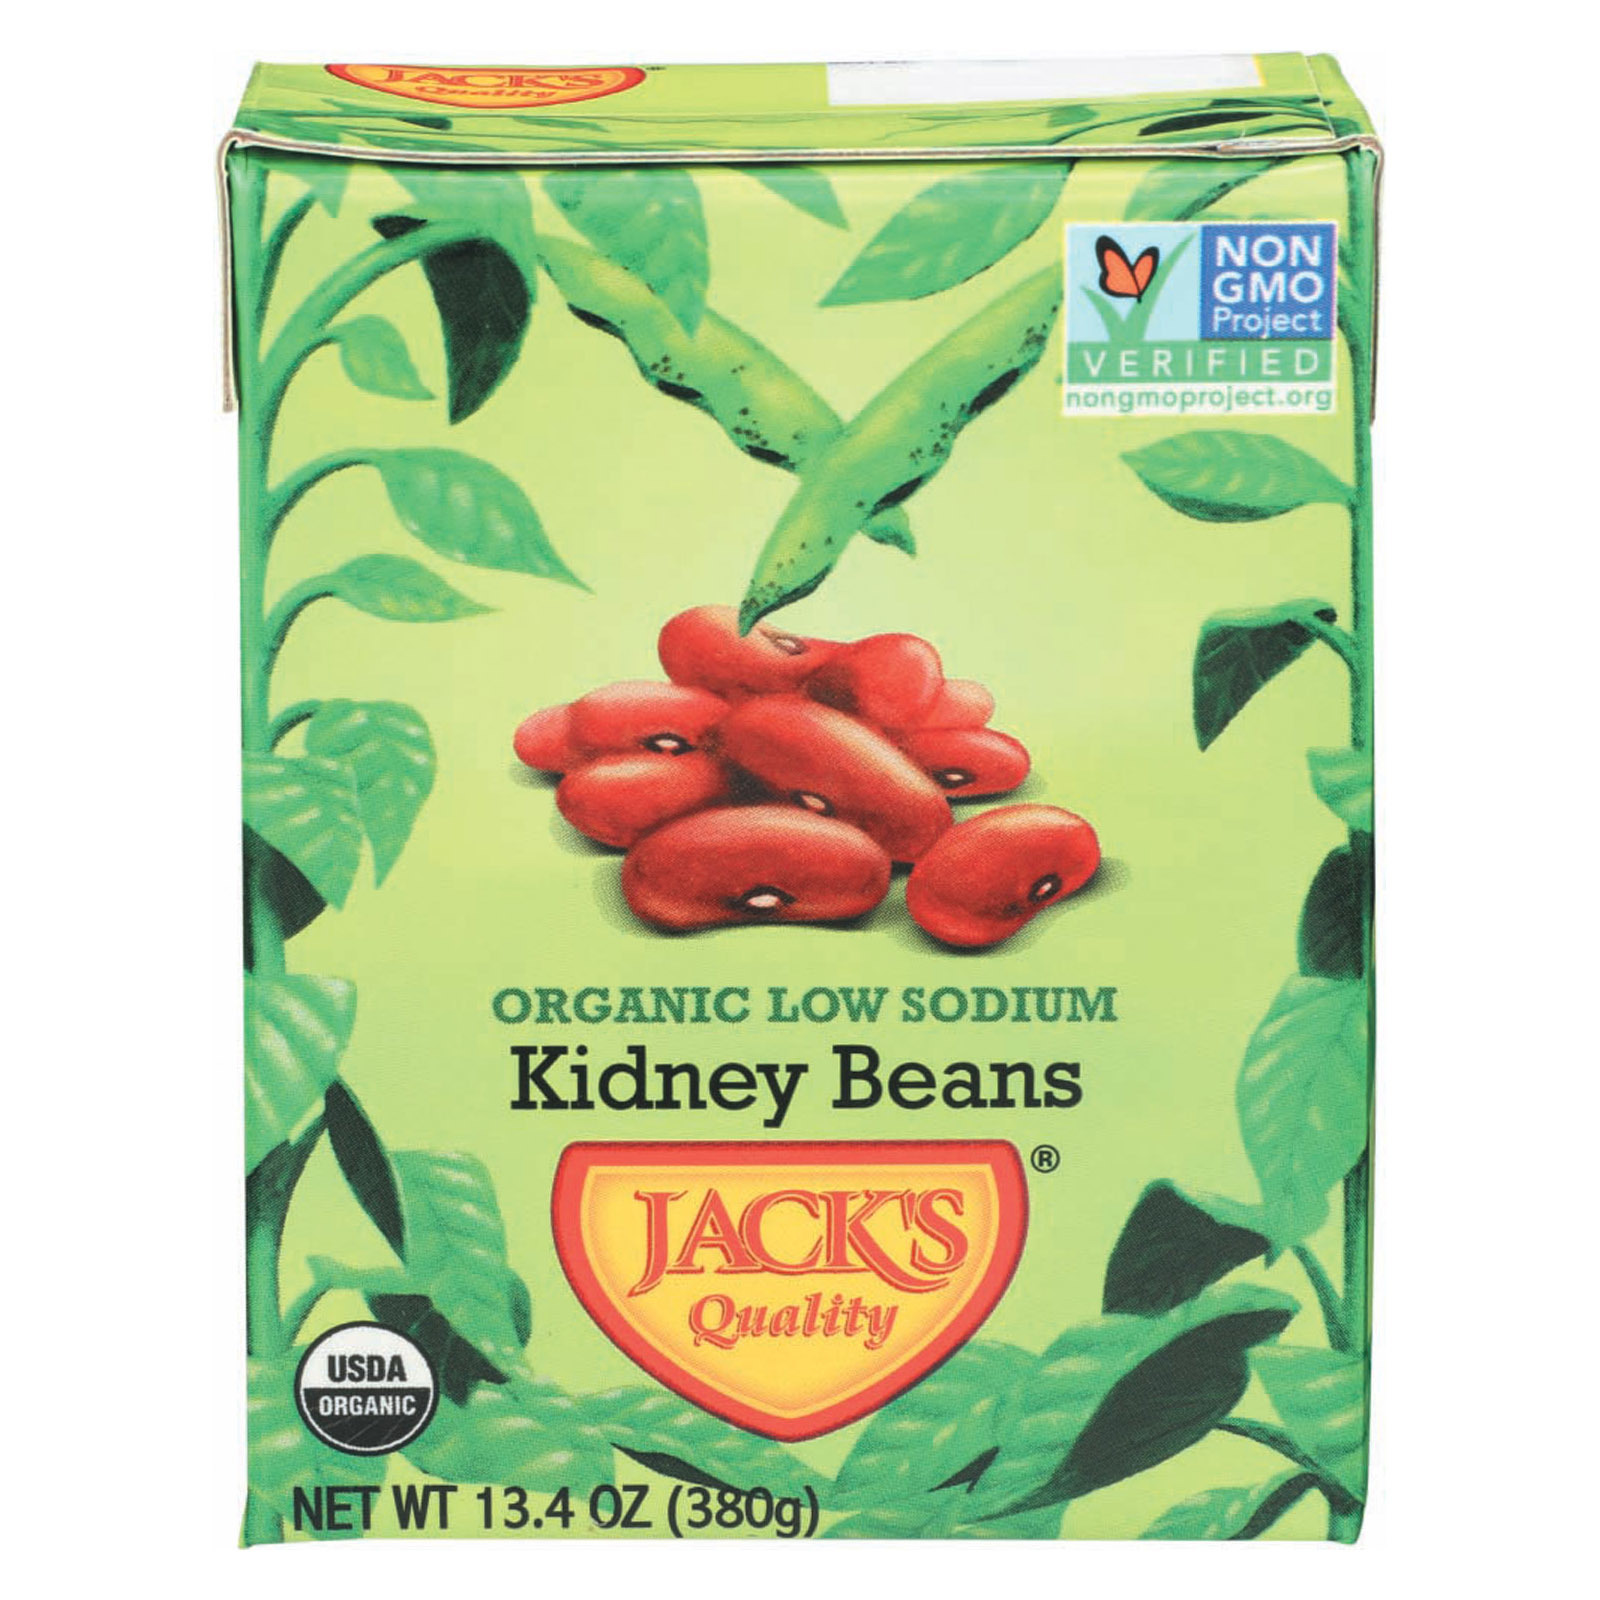 Jack's Quality Organic Red Kidney Beans - Low Sodium - Case of 8 - 13.4 oz